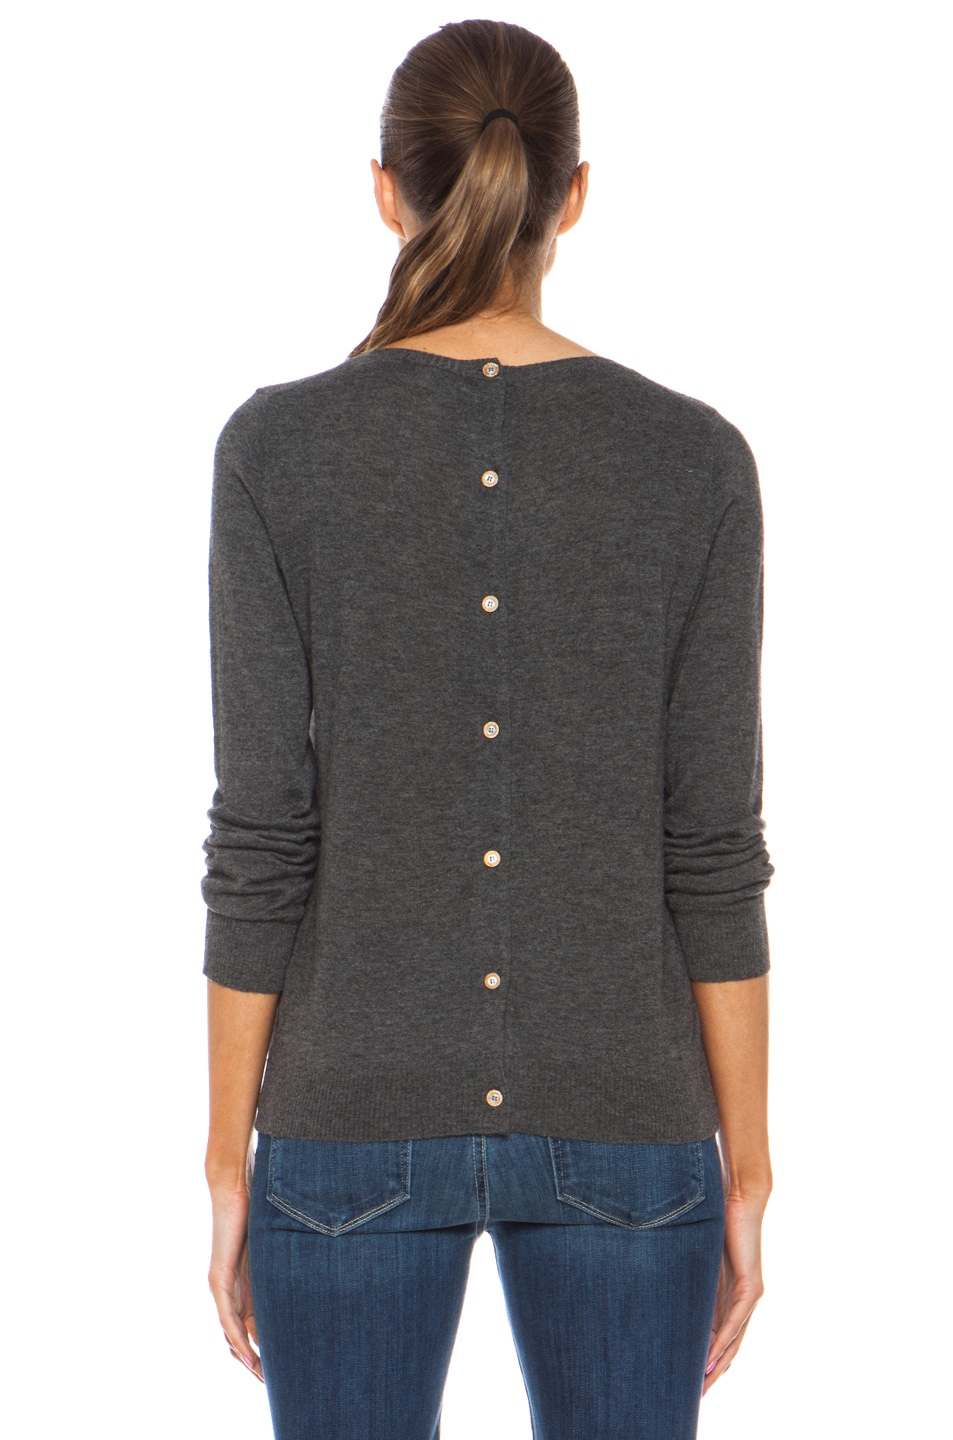 Image 4 of Golden Goose Heart Cashmere Pullover with Button Back Detail in Melange Grey